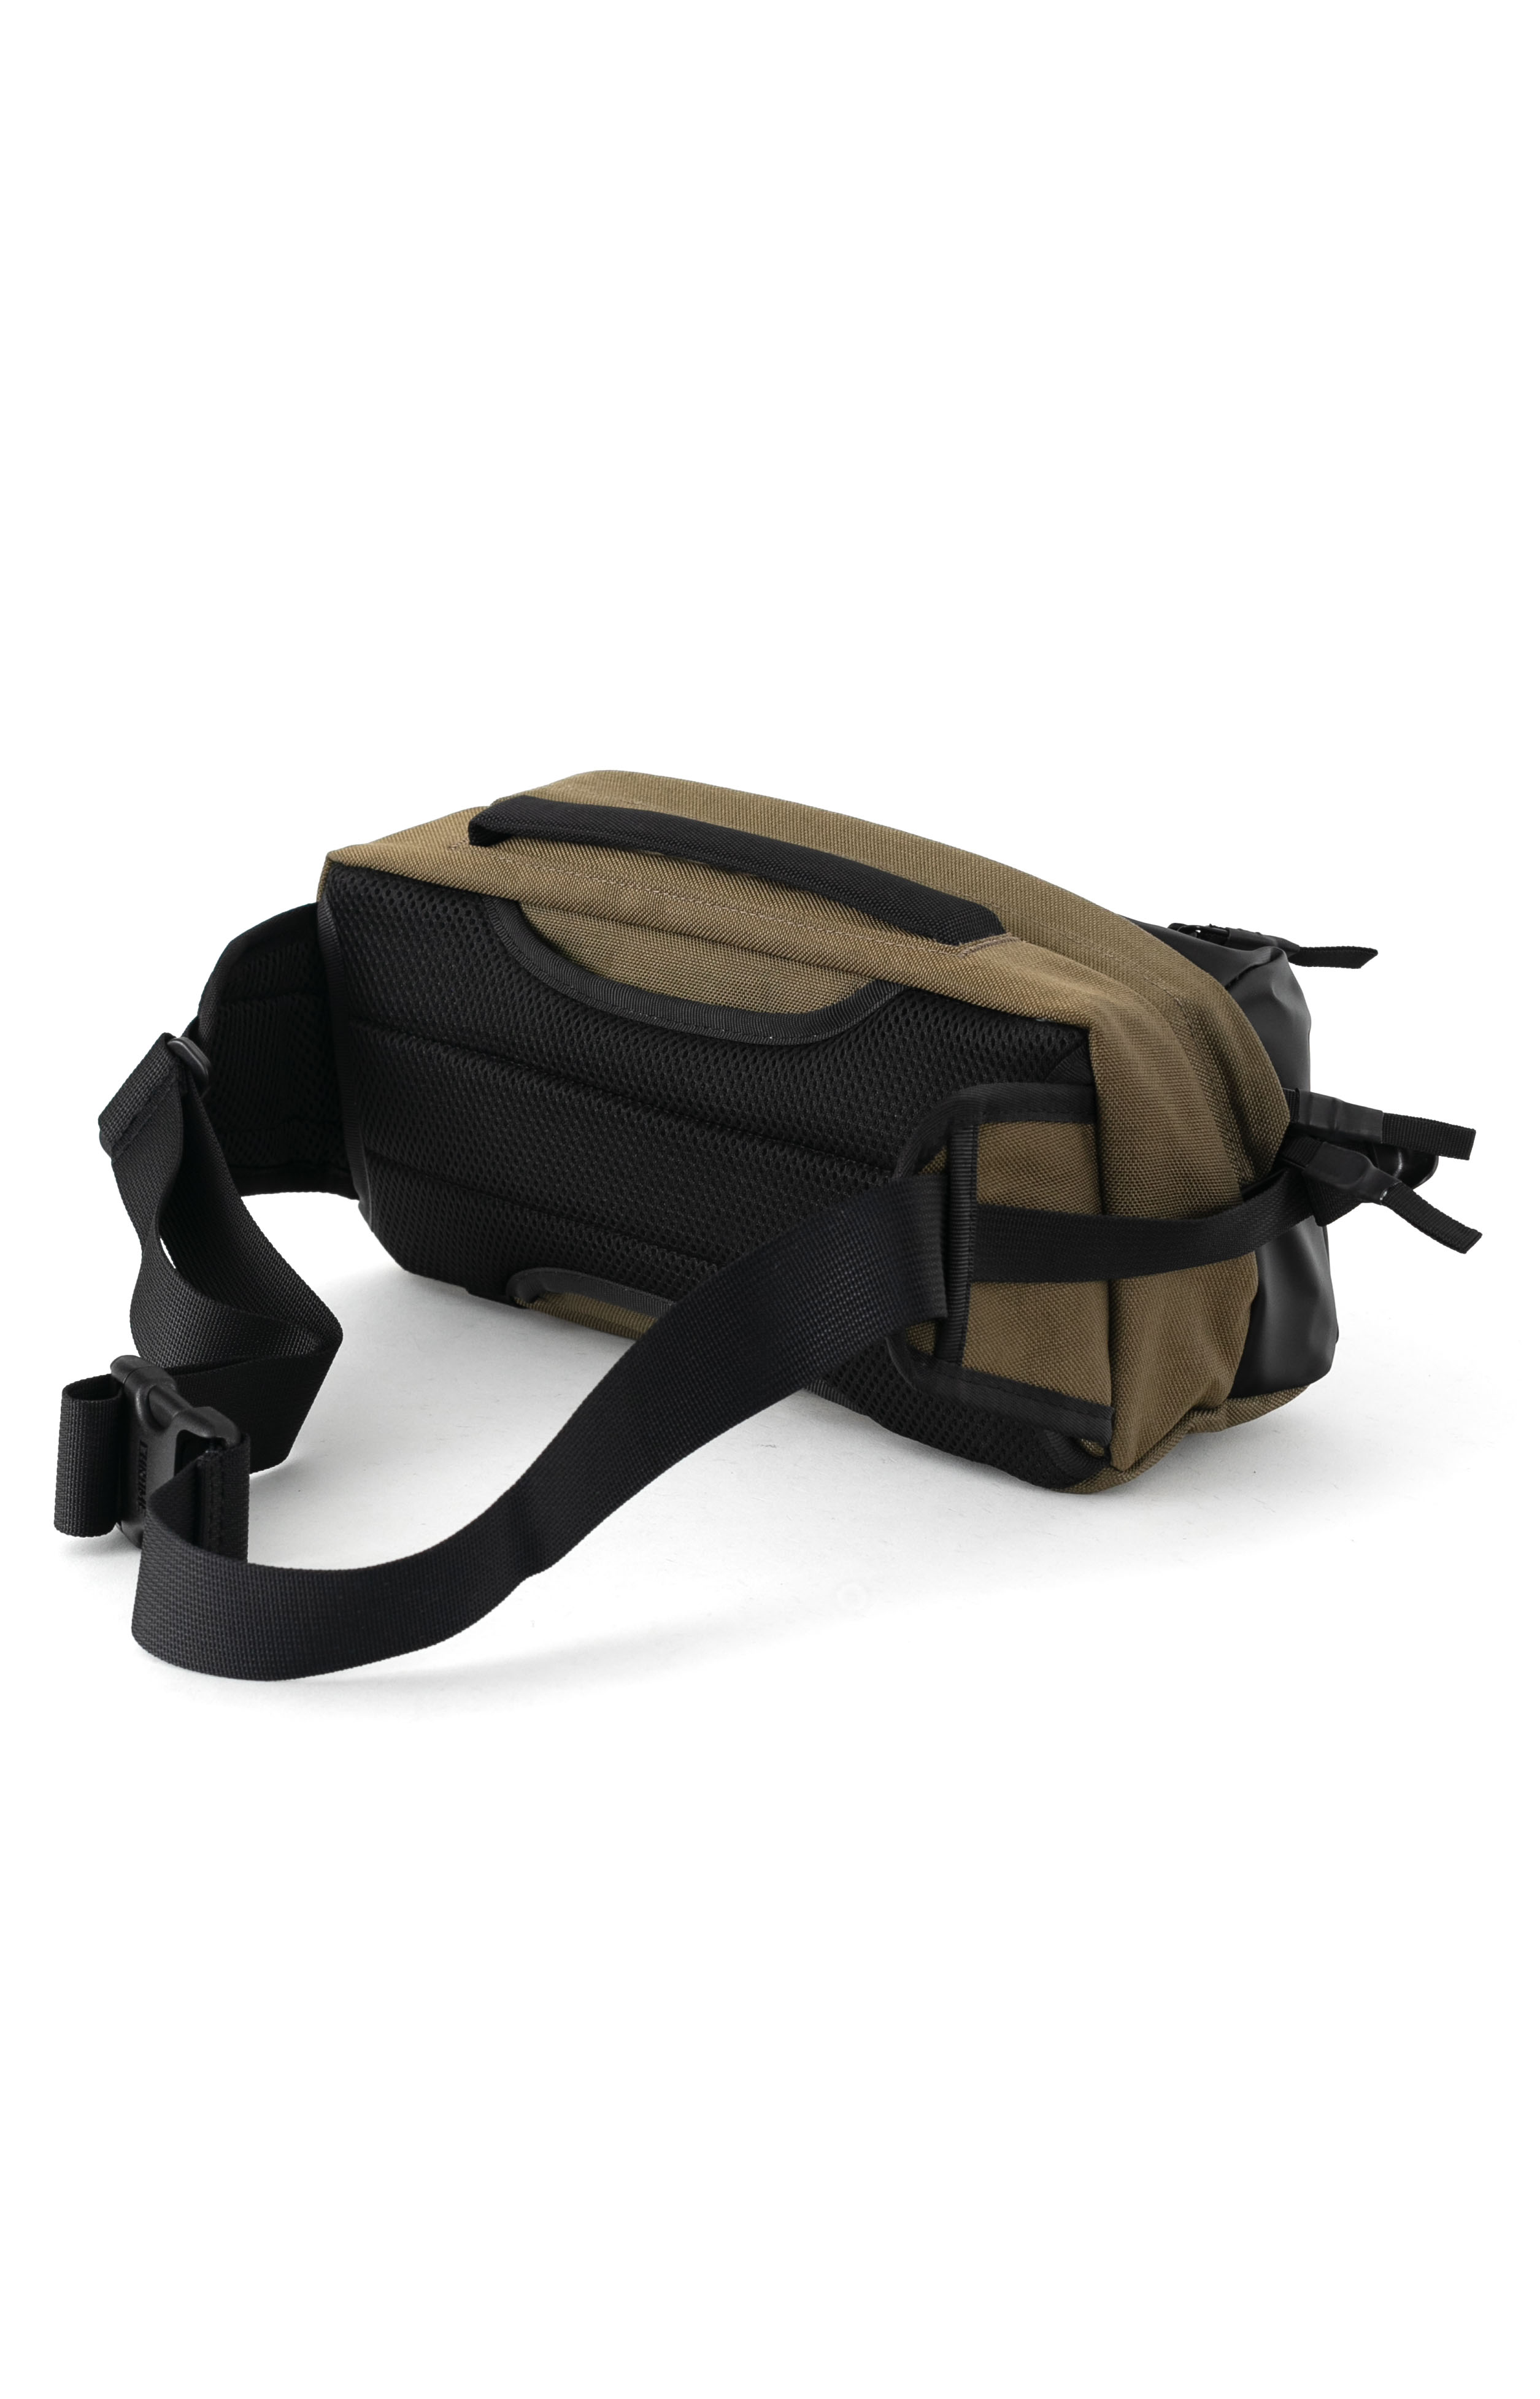 Kovac Sling Bag - Ranger/Black 3